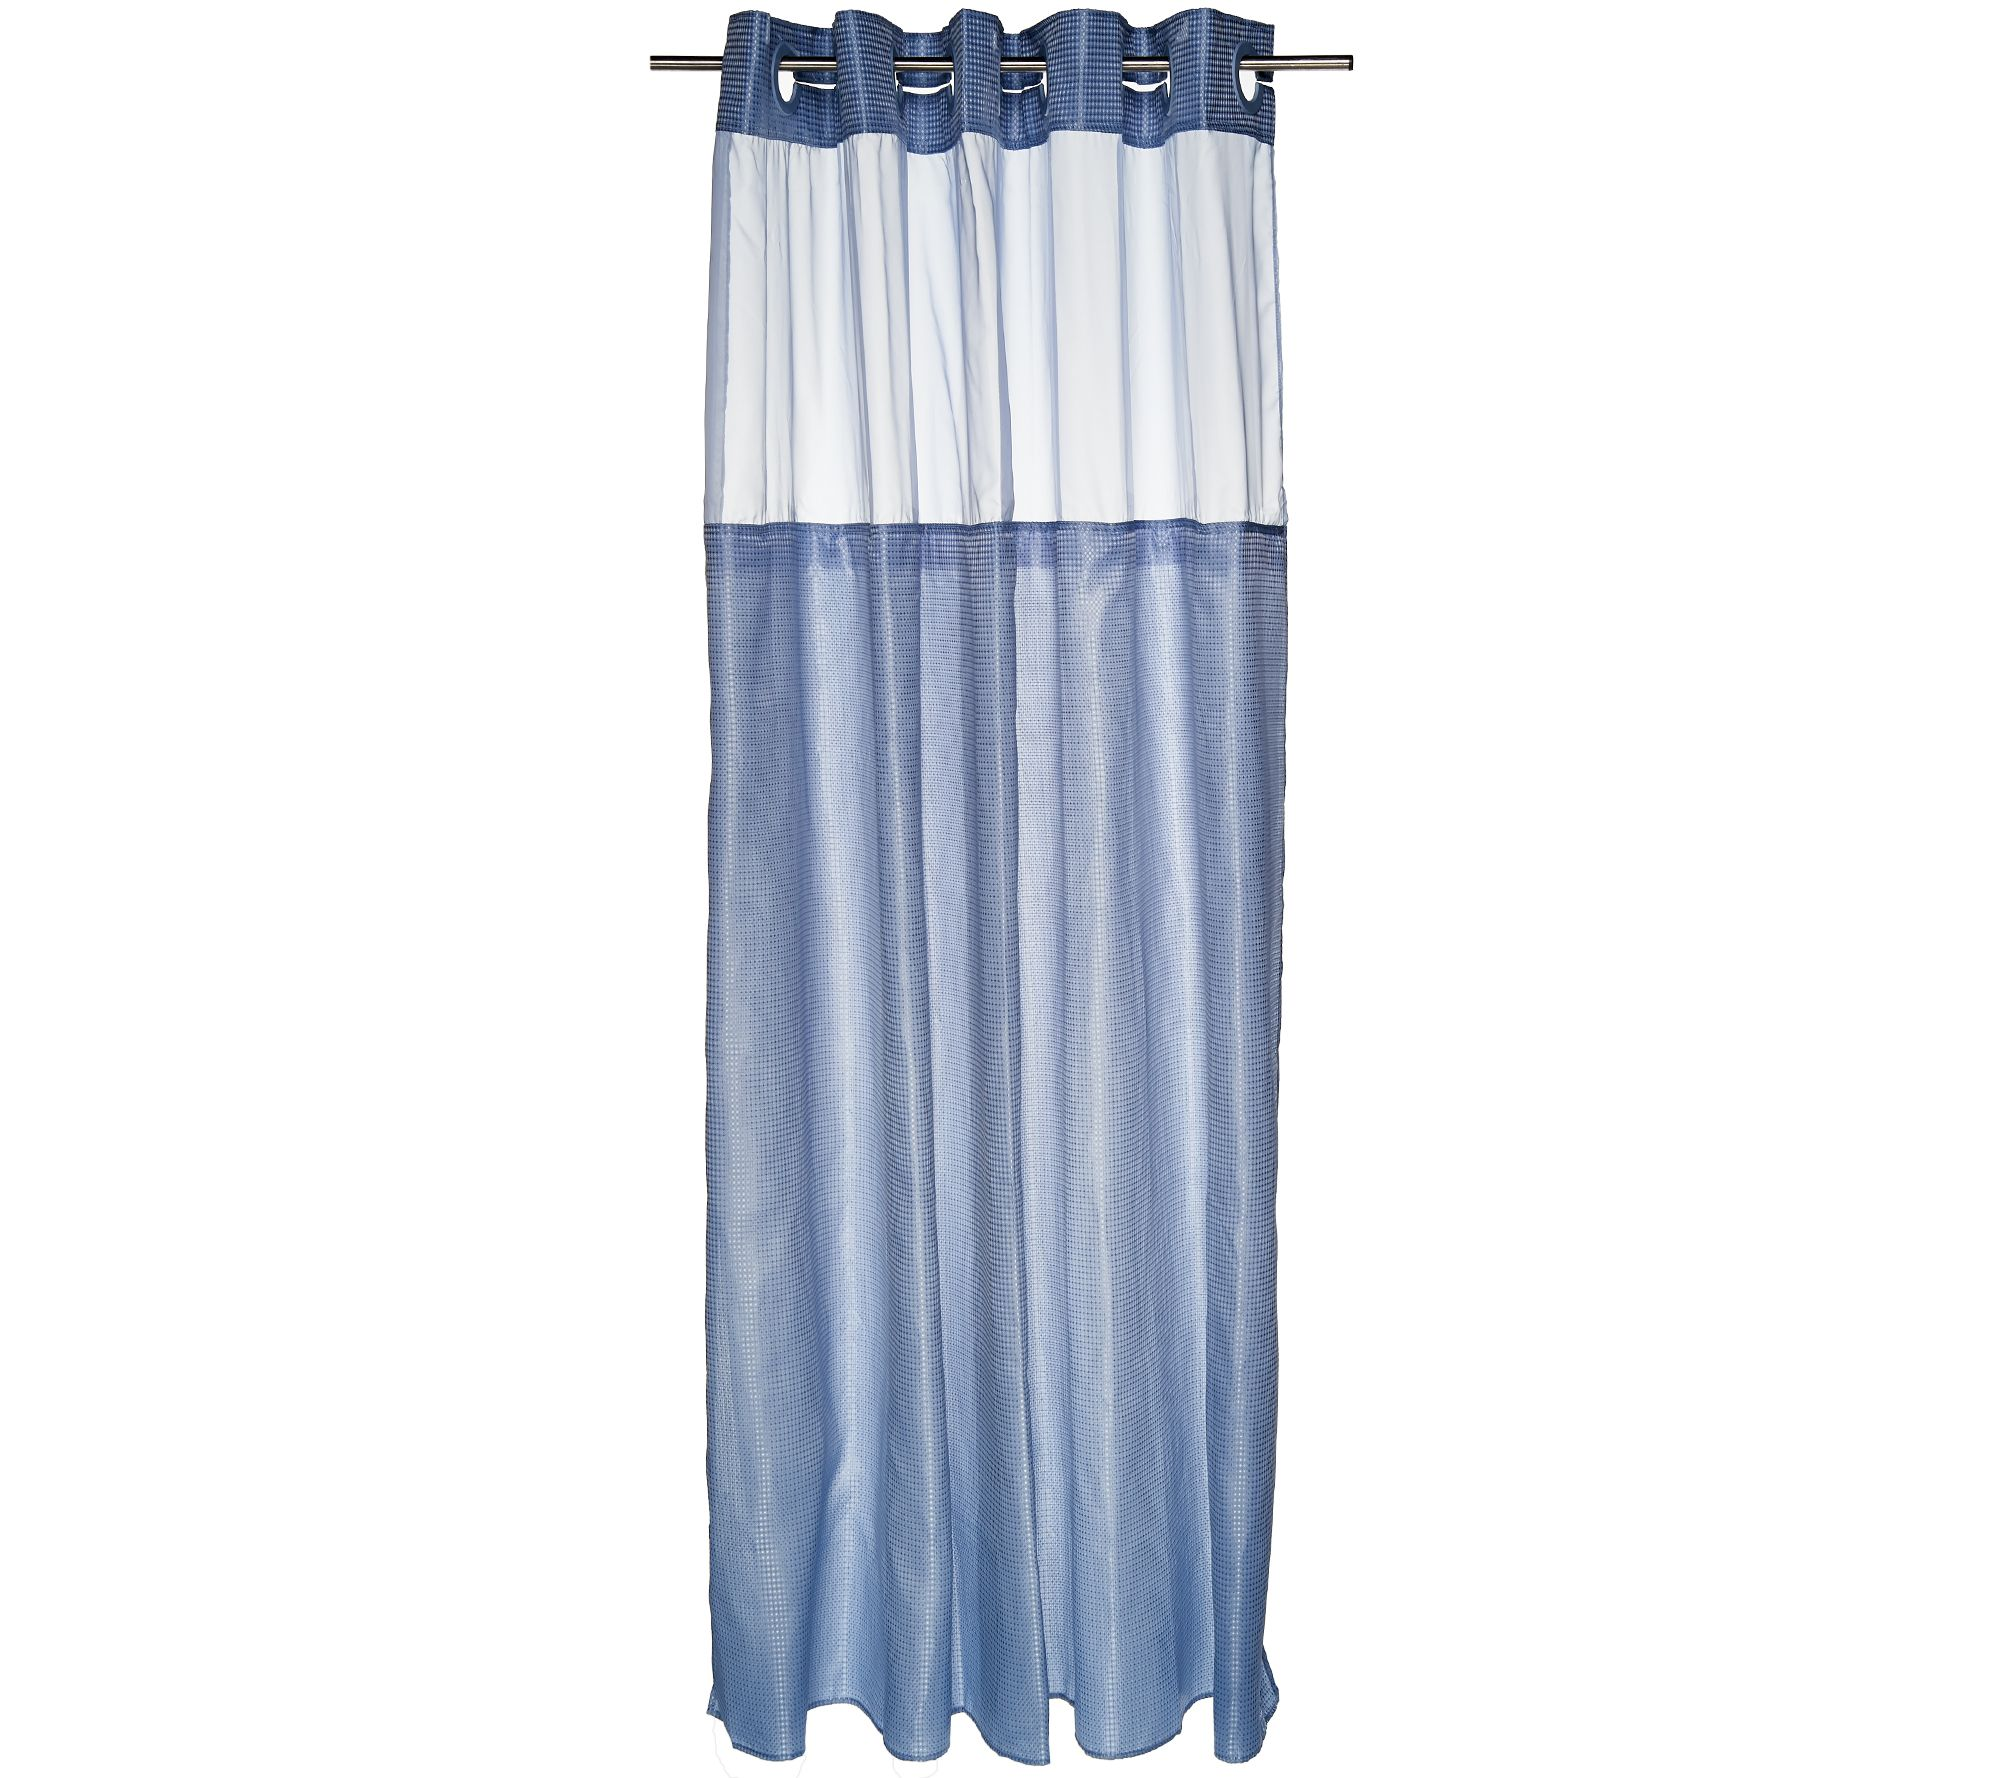 EZ-On Diamond Dobby Shower Curtain with Liner - Page 1 — QVC.com